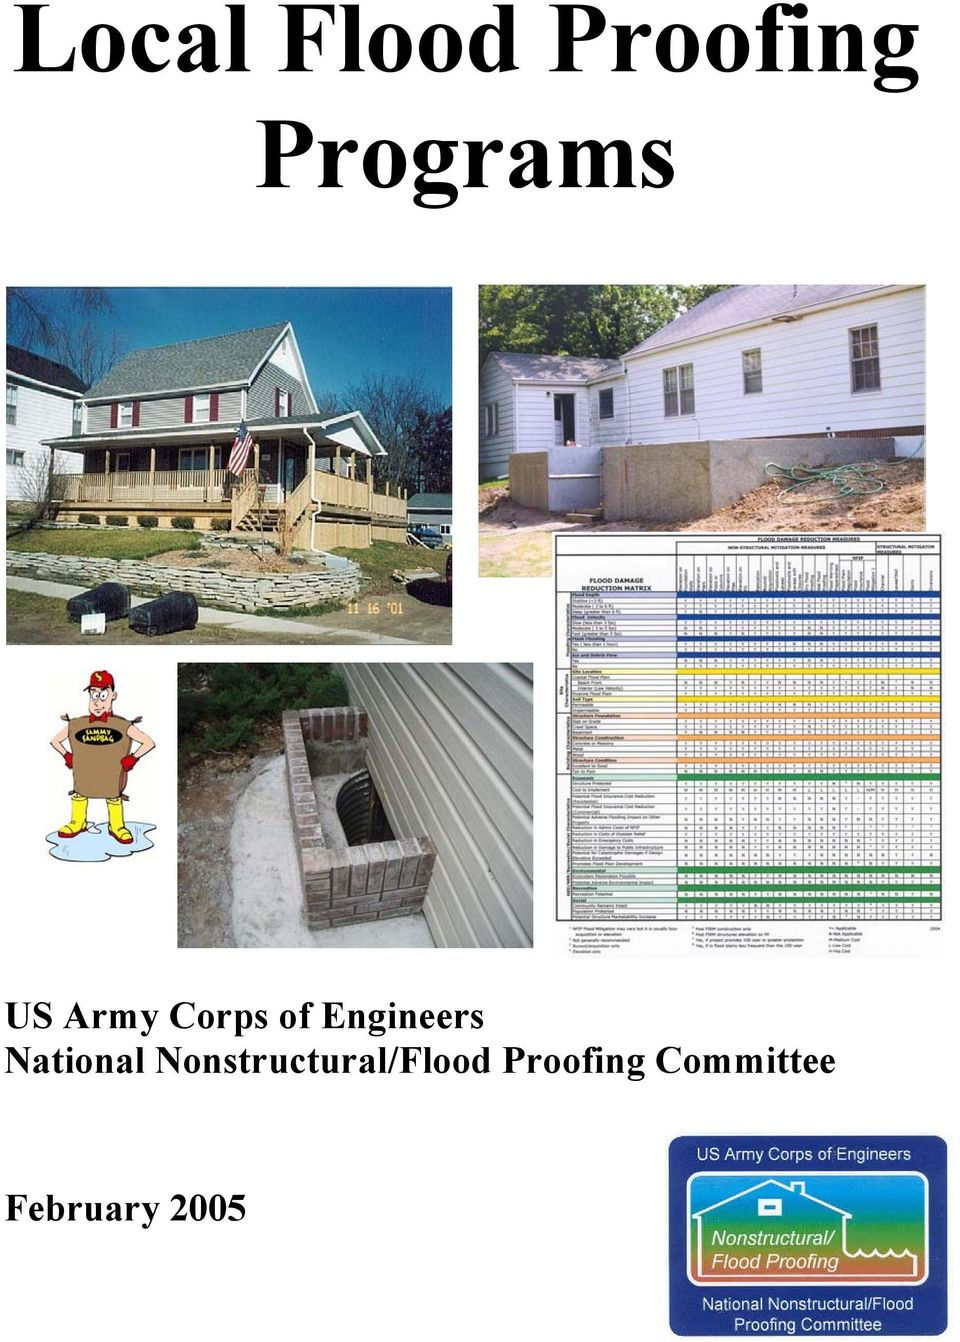 National Nonstructural/Flood